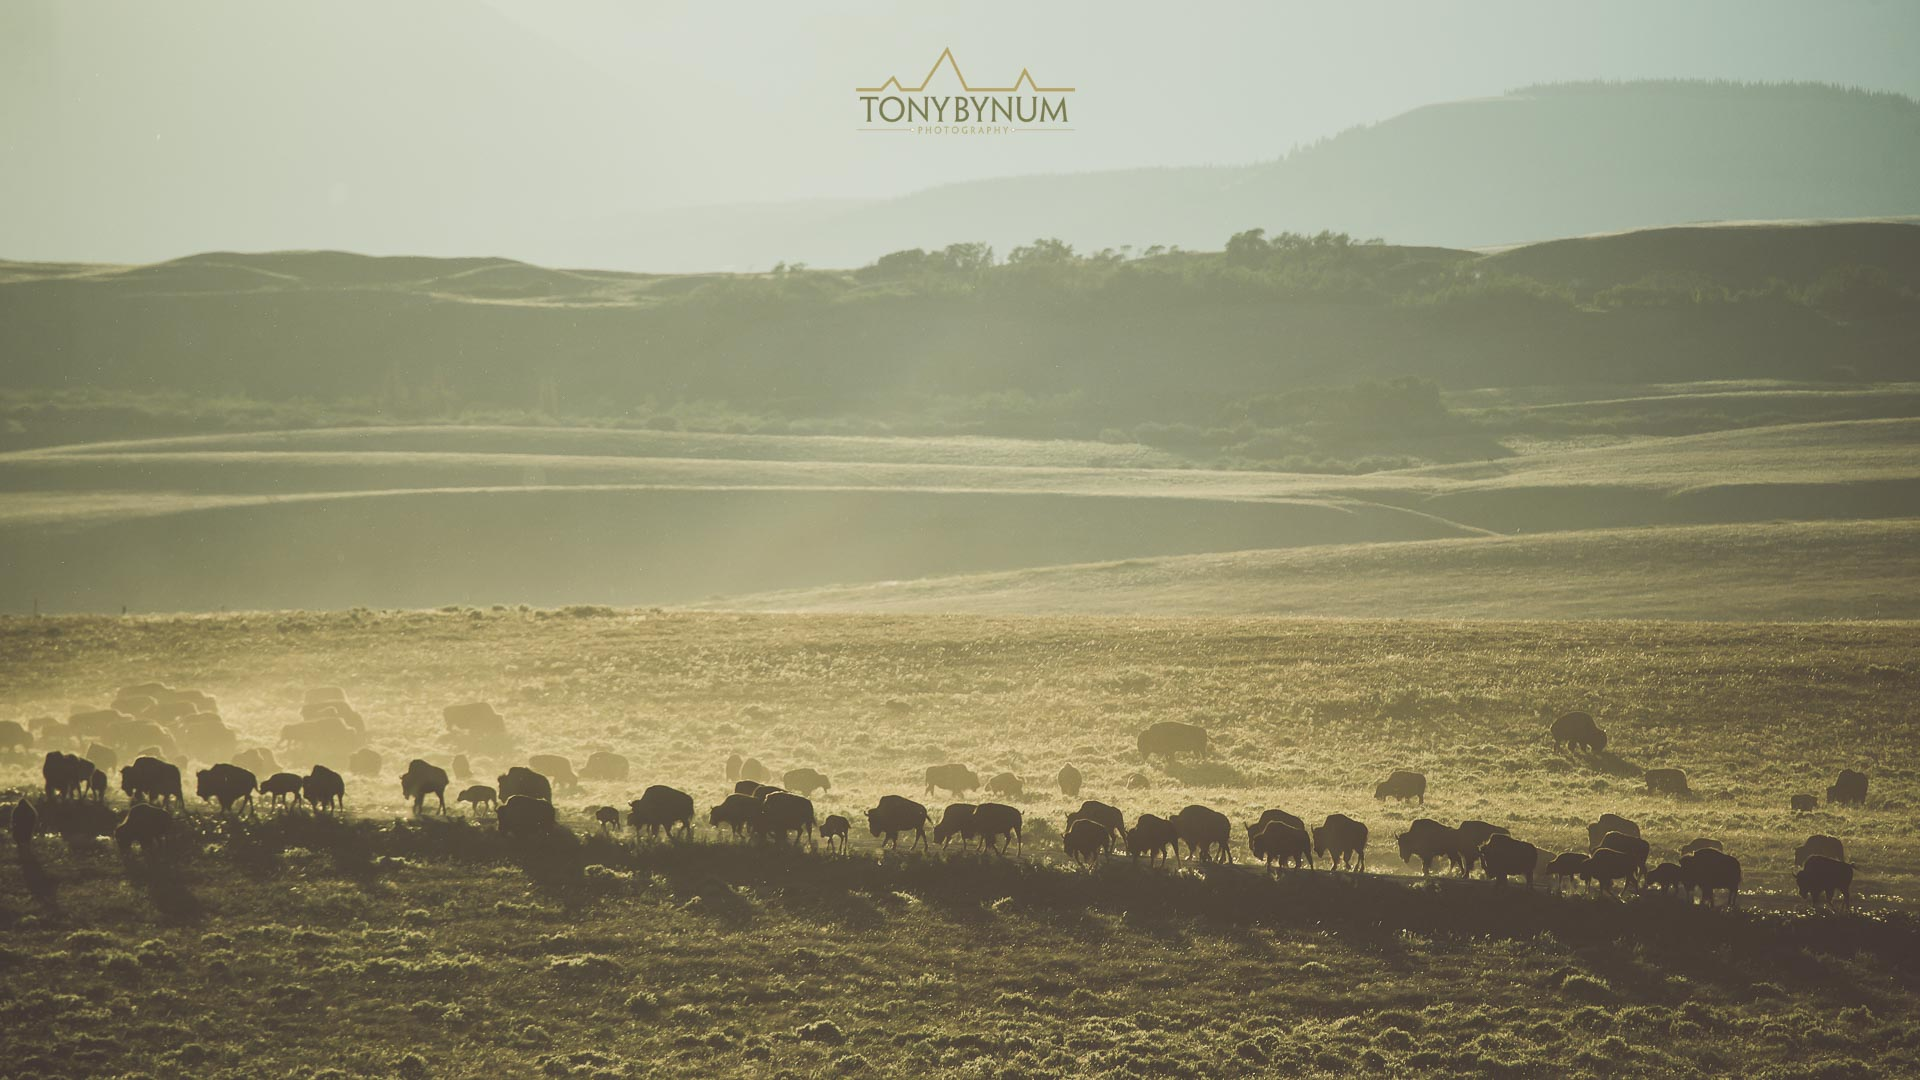 A small herd of american buffalo (bison) move across the landscape as if they are part of it. Blackfeet Reservation, Montana ©tonybynum.com